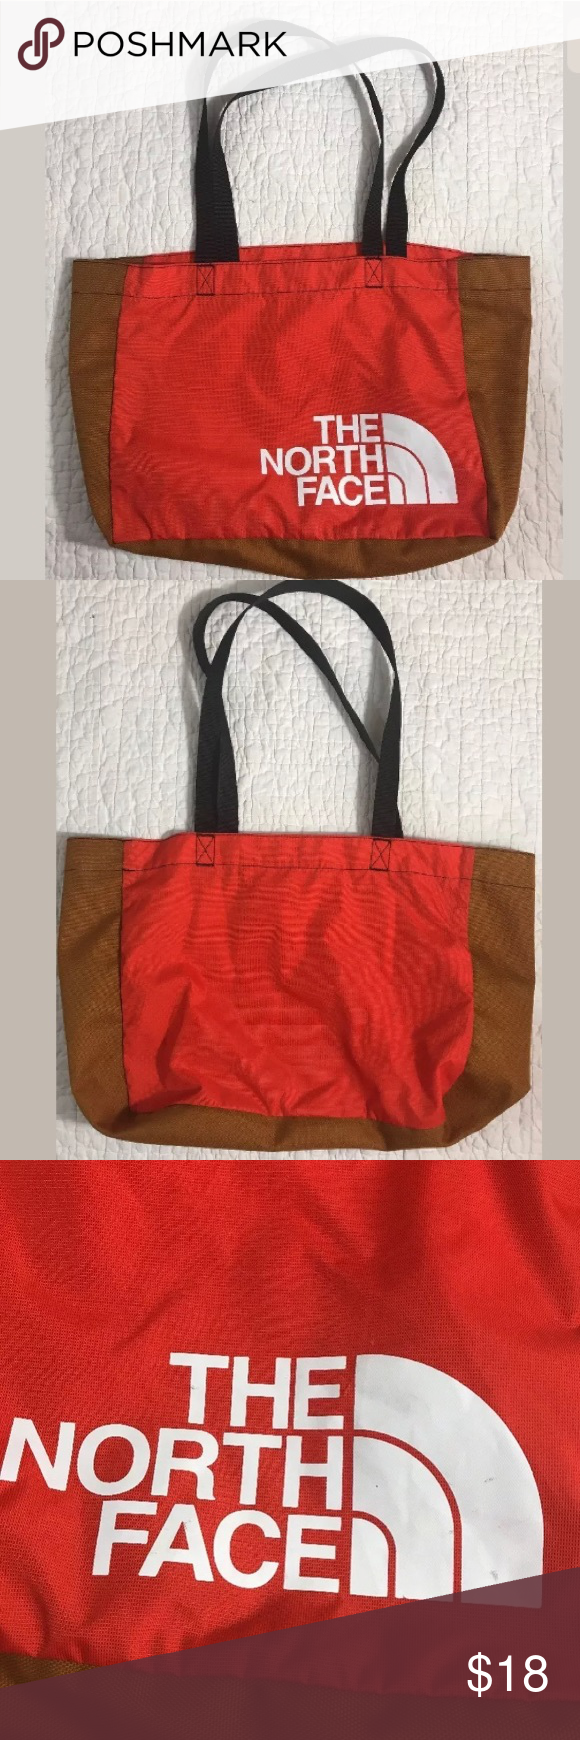 d6aea175c The North Face Travel Shoulder Orange Tote Bag The North Face Loop ...